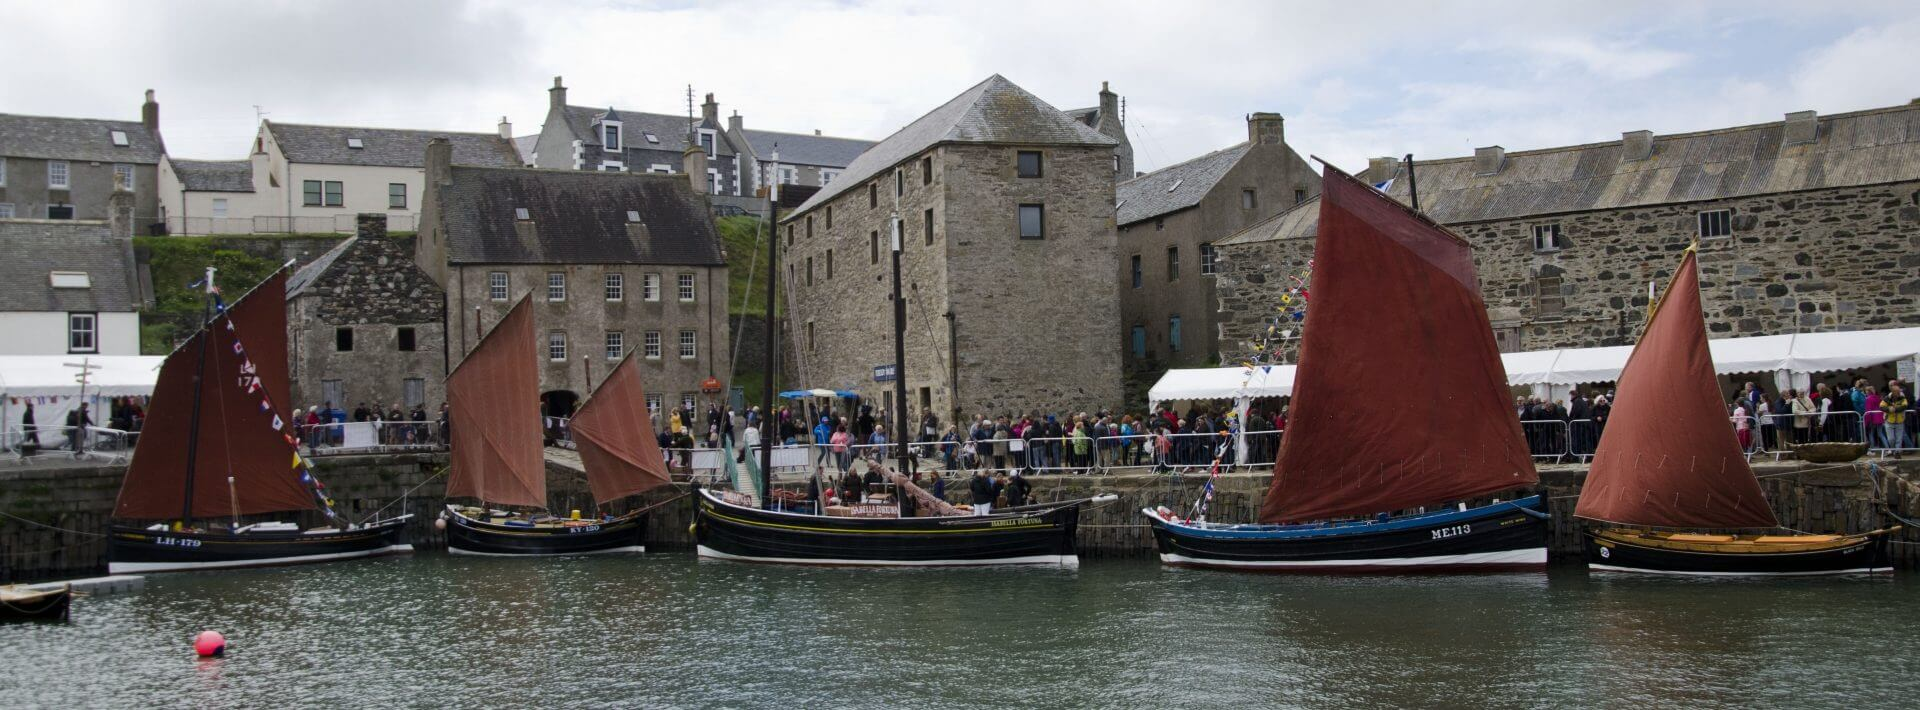 The Scottish Traditional Boat Festival